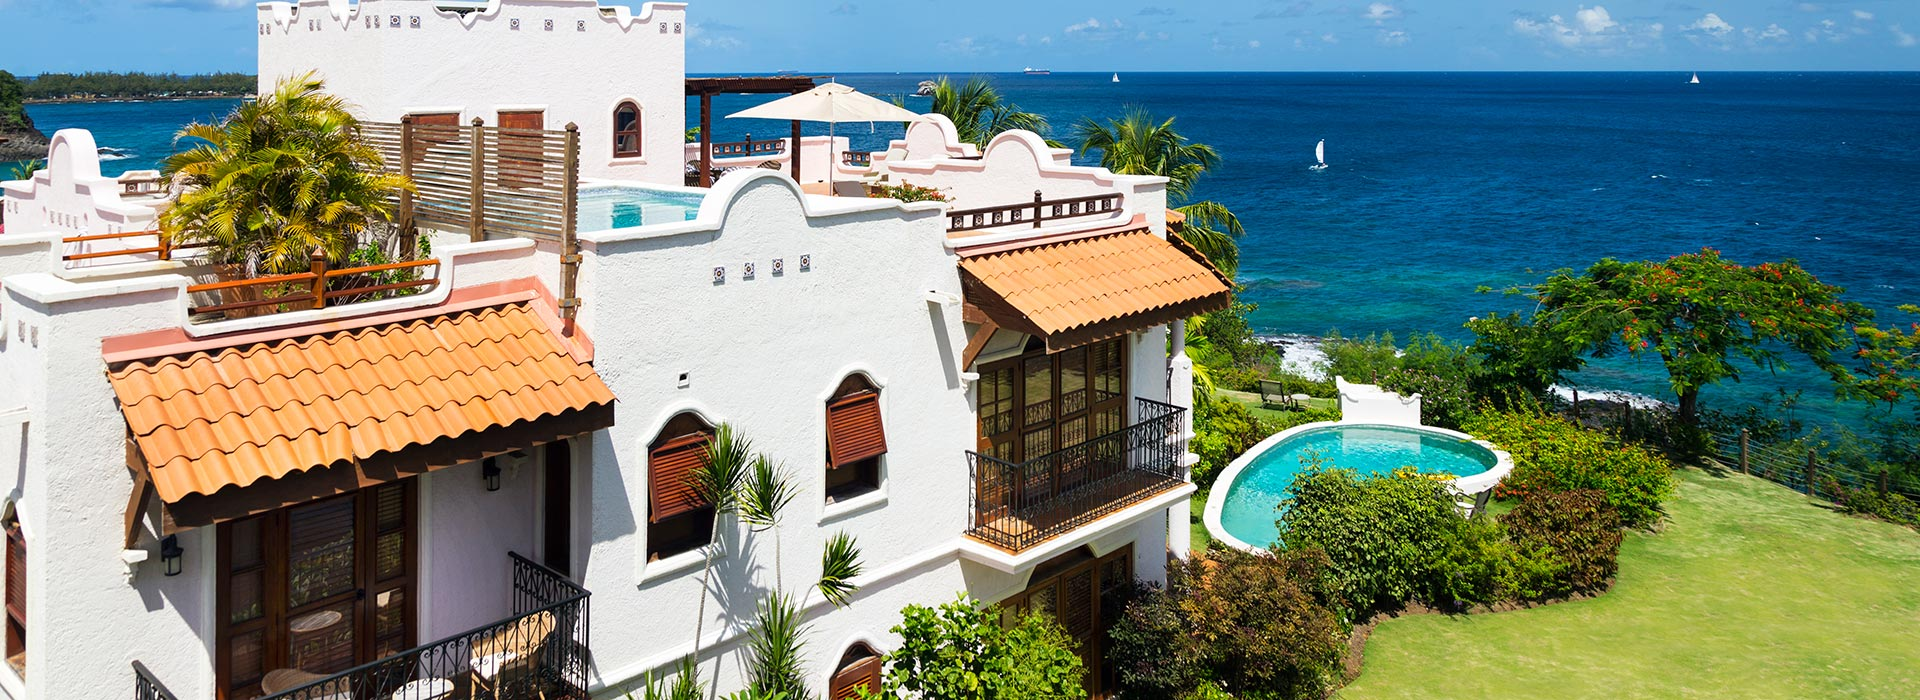 cap maison resort and spa st lucia reviews